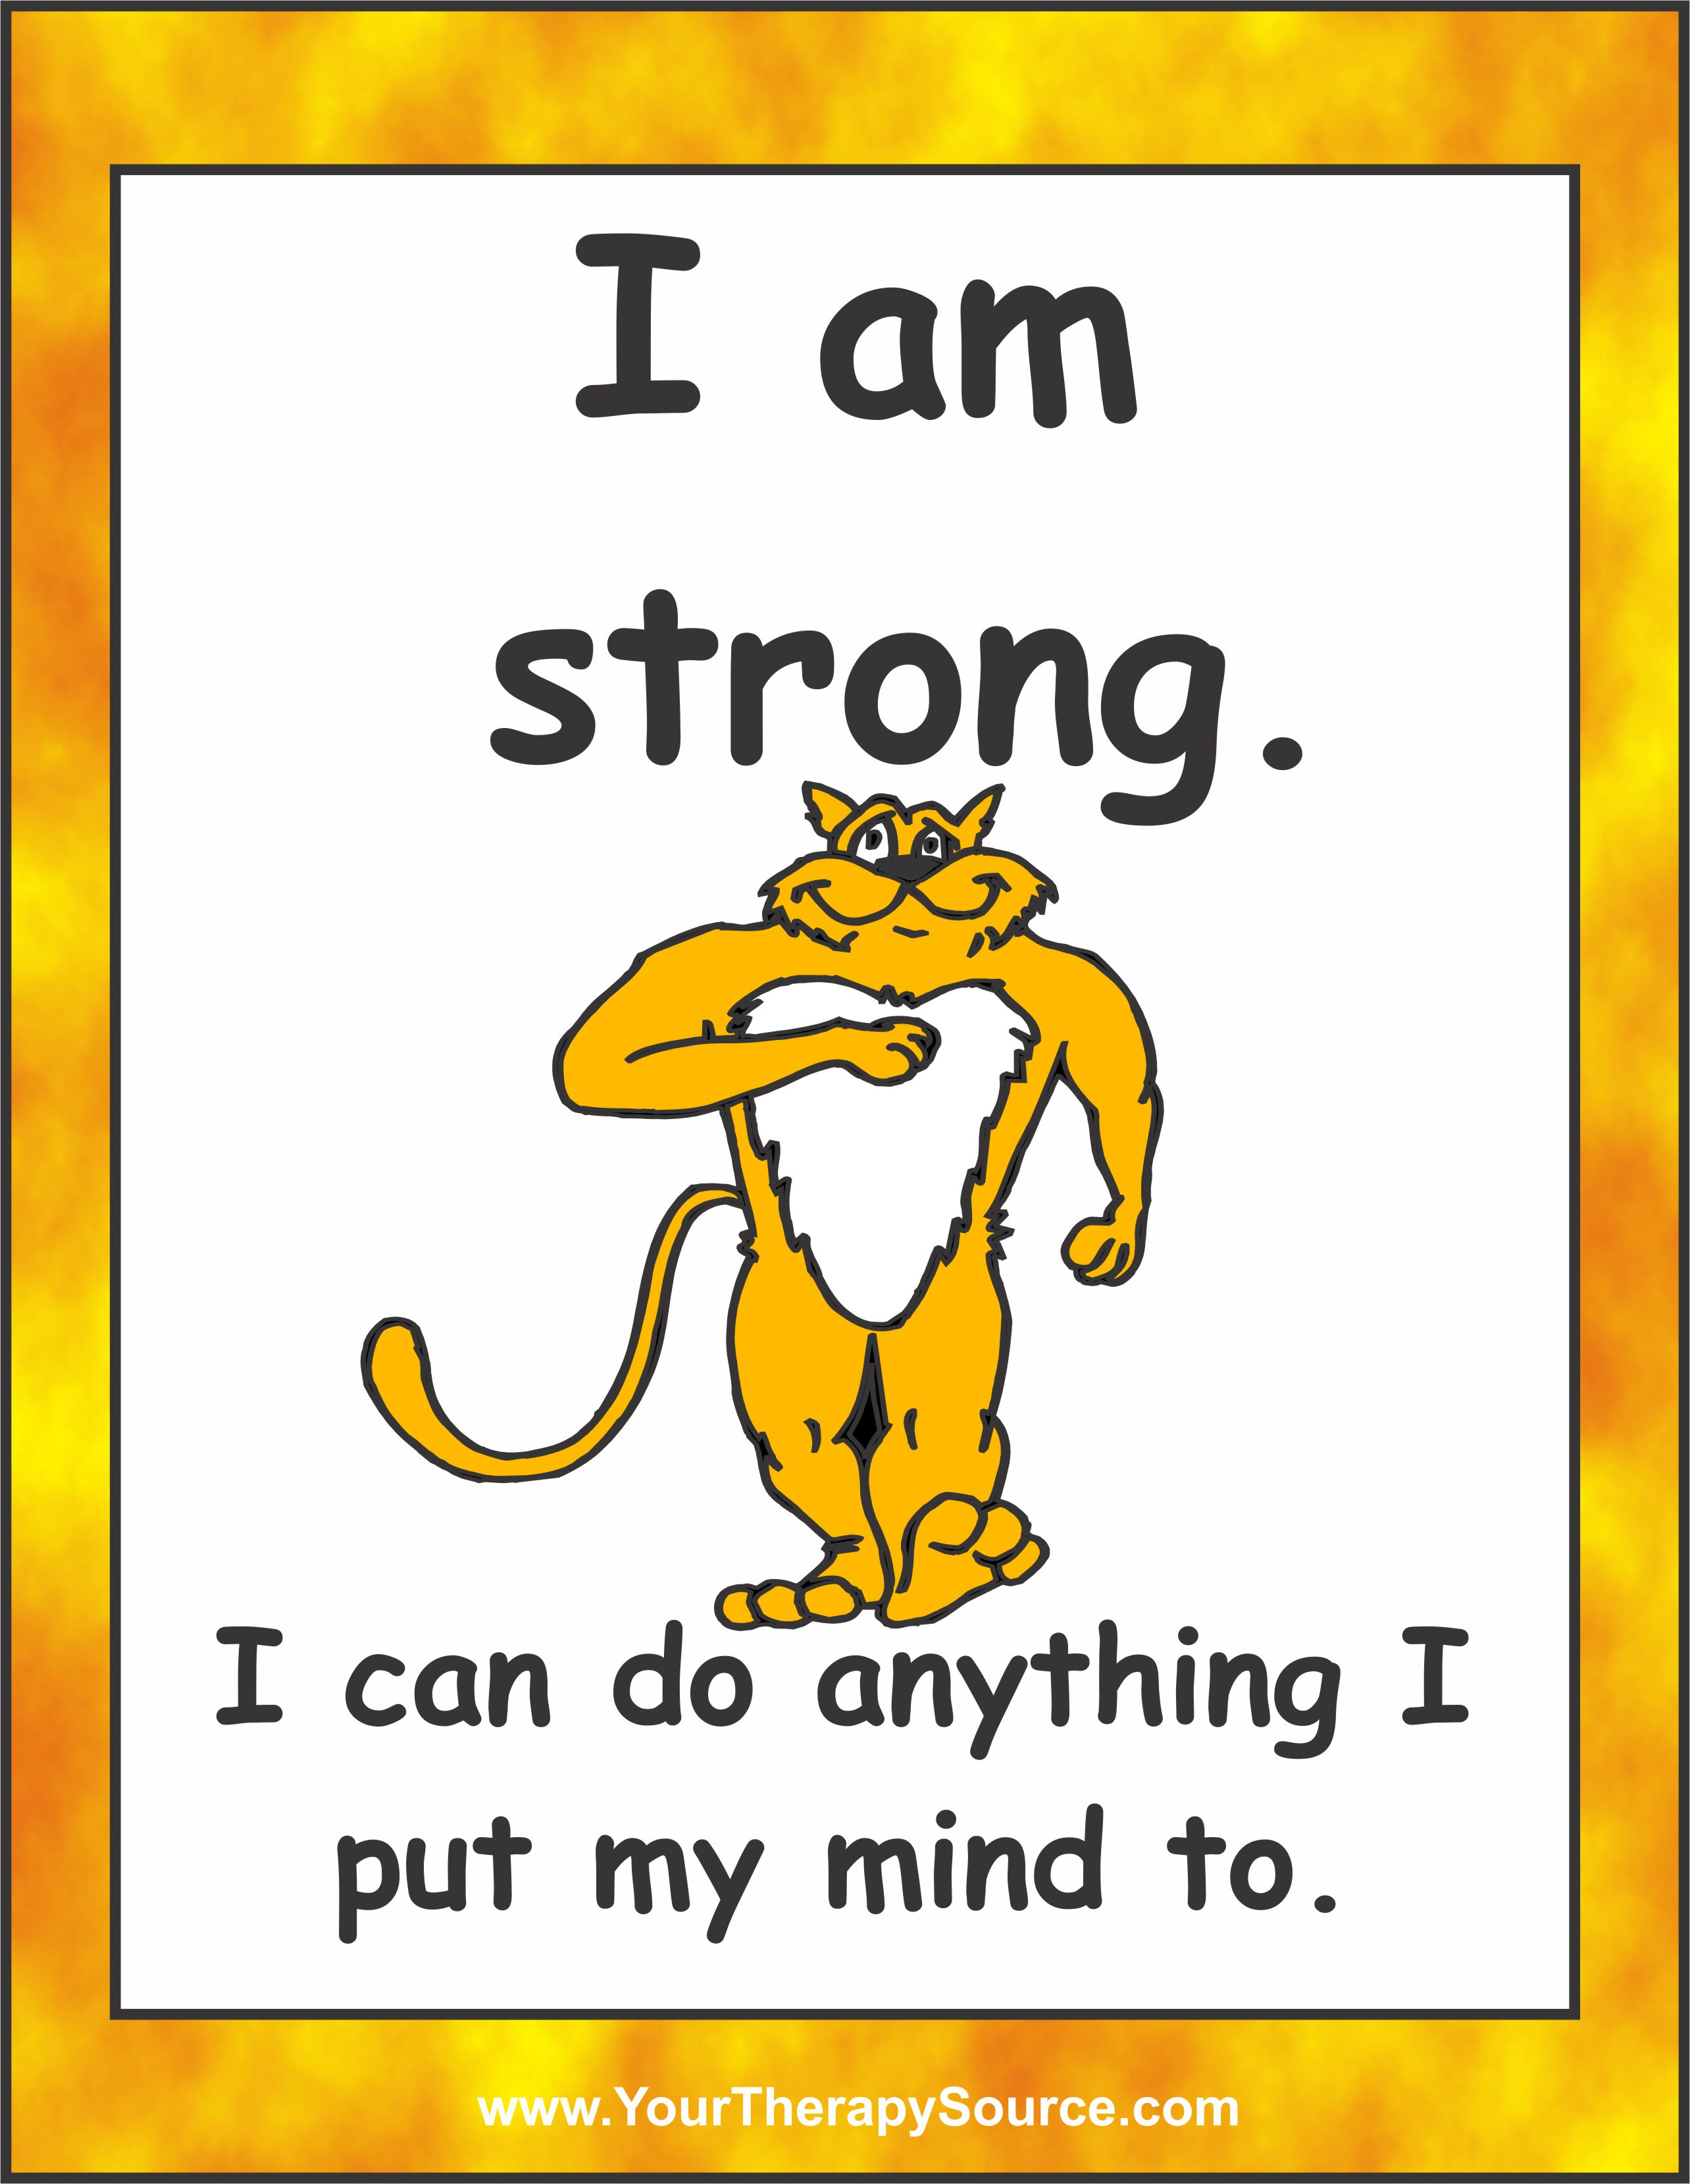 Positive Affirmation Posters And Cards